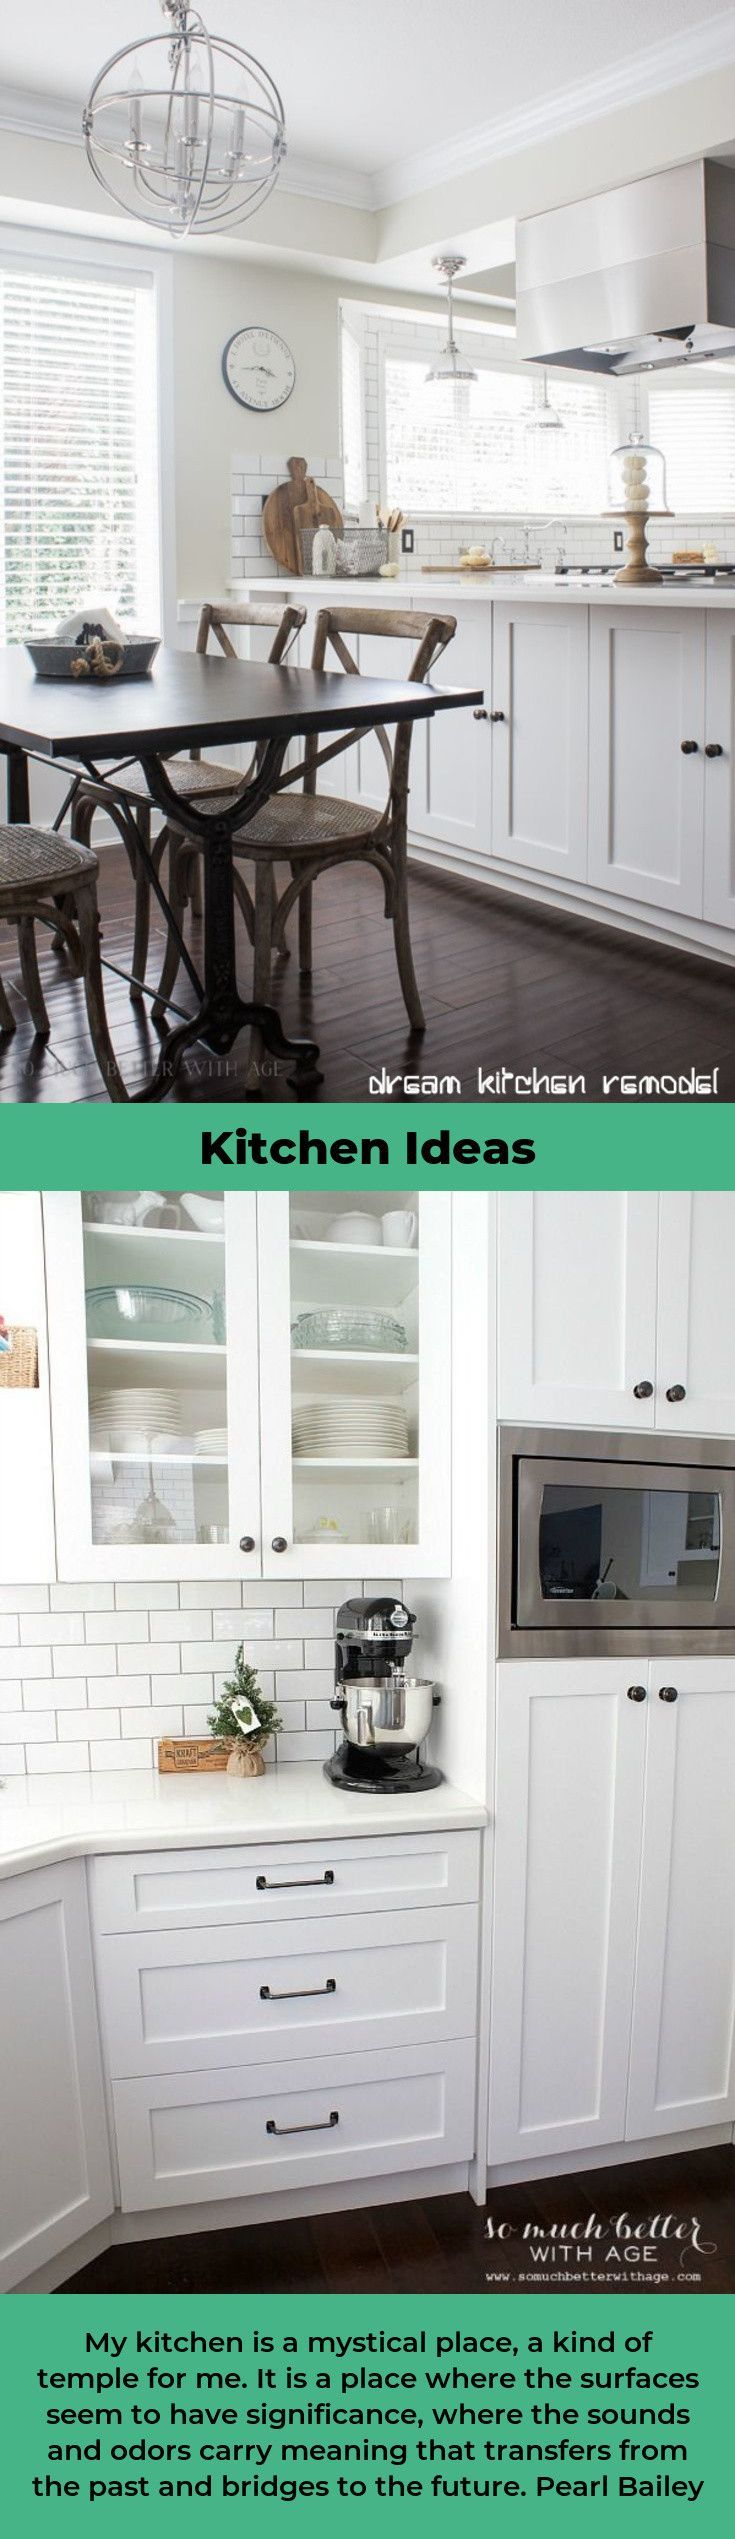 Tips Tricks For Painting Oak Cabinets Painting Kitchen Cabinets Kitchen Inspirations Kitchen Paint